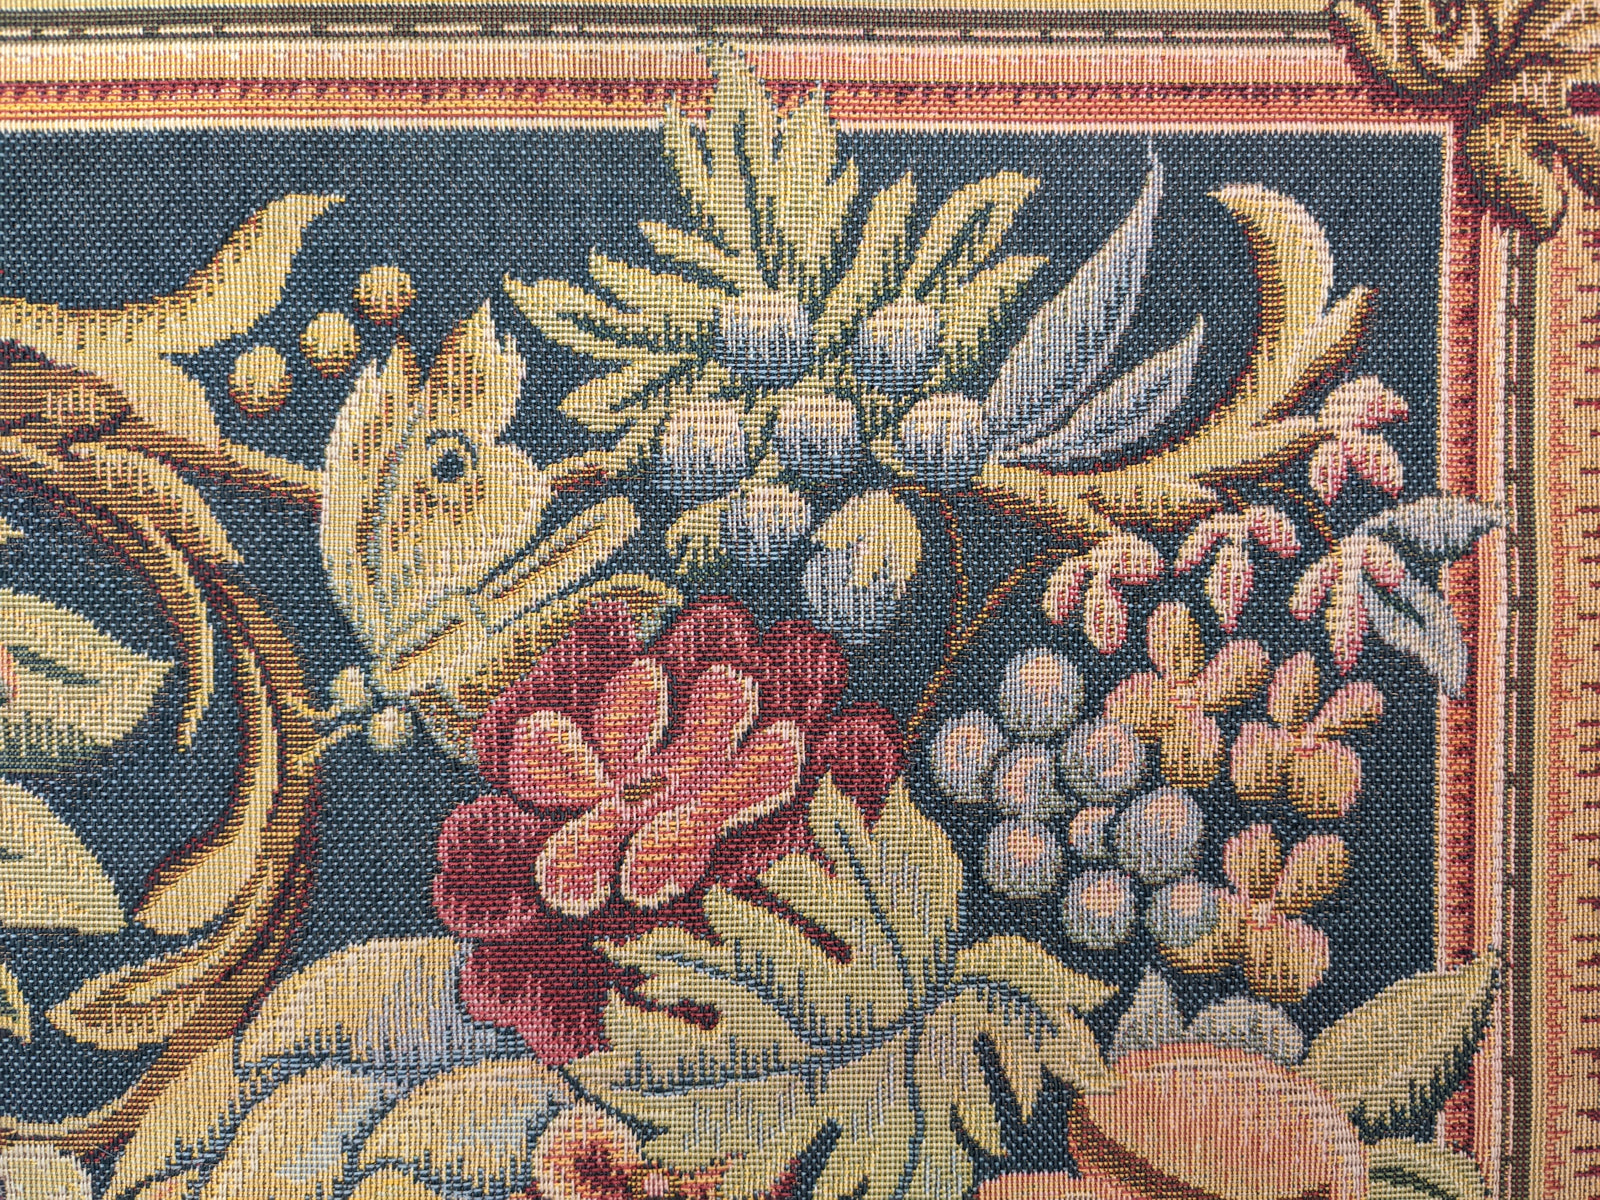 Embroidery - Bird with Fruits & Flowers